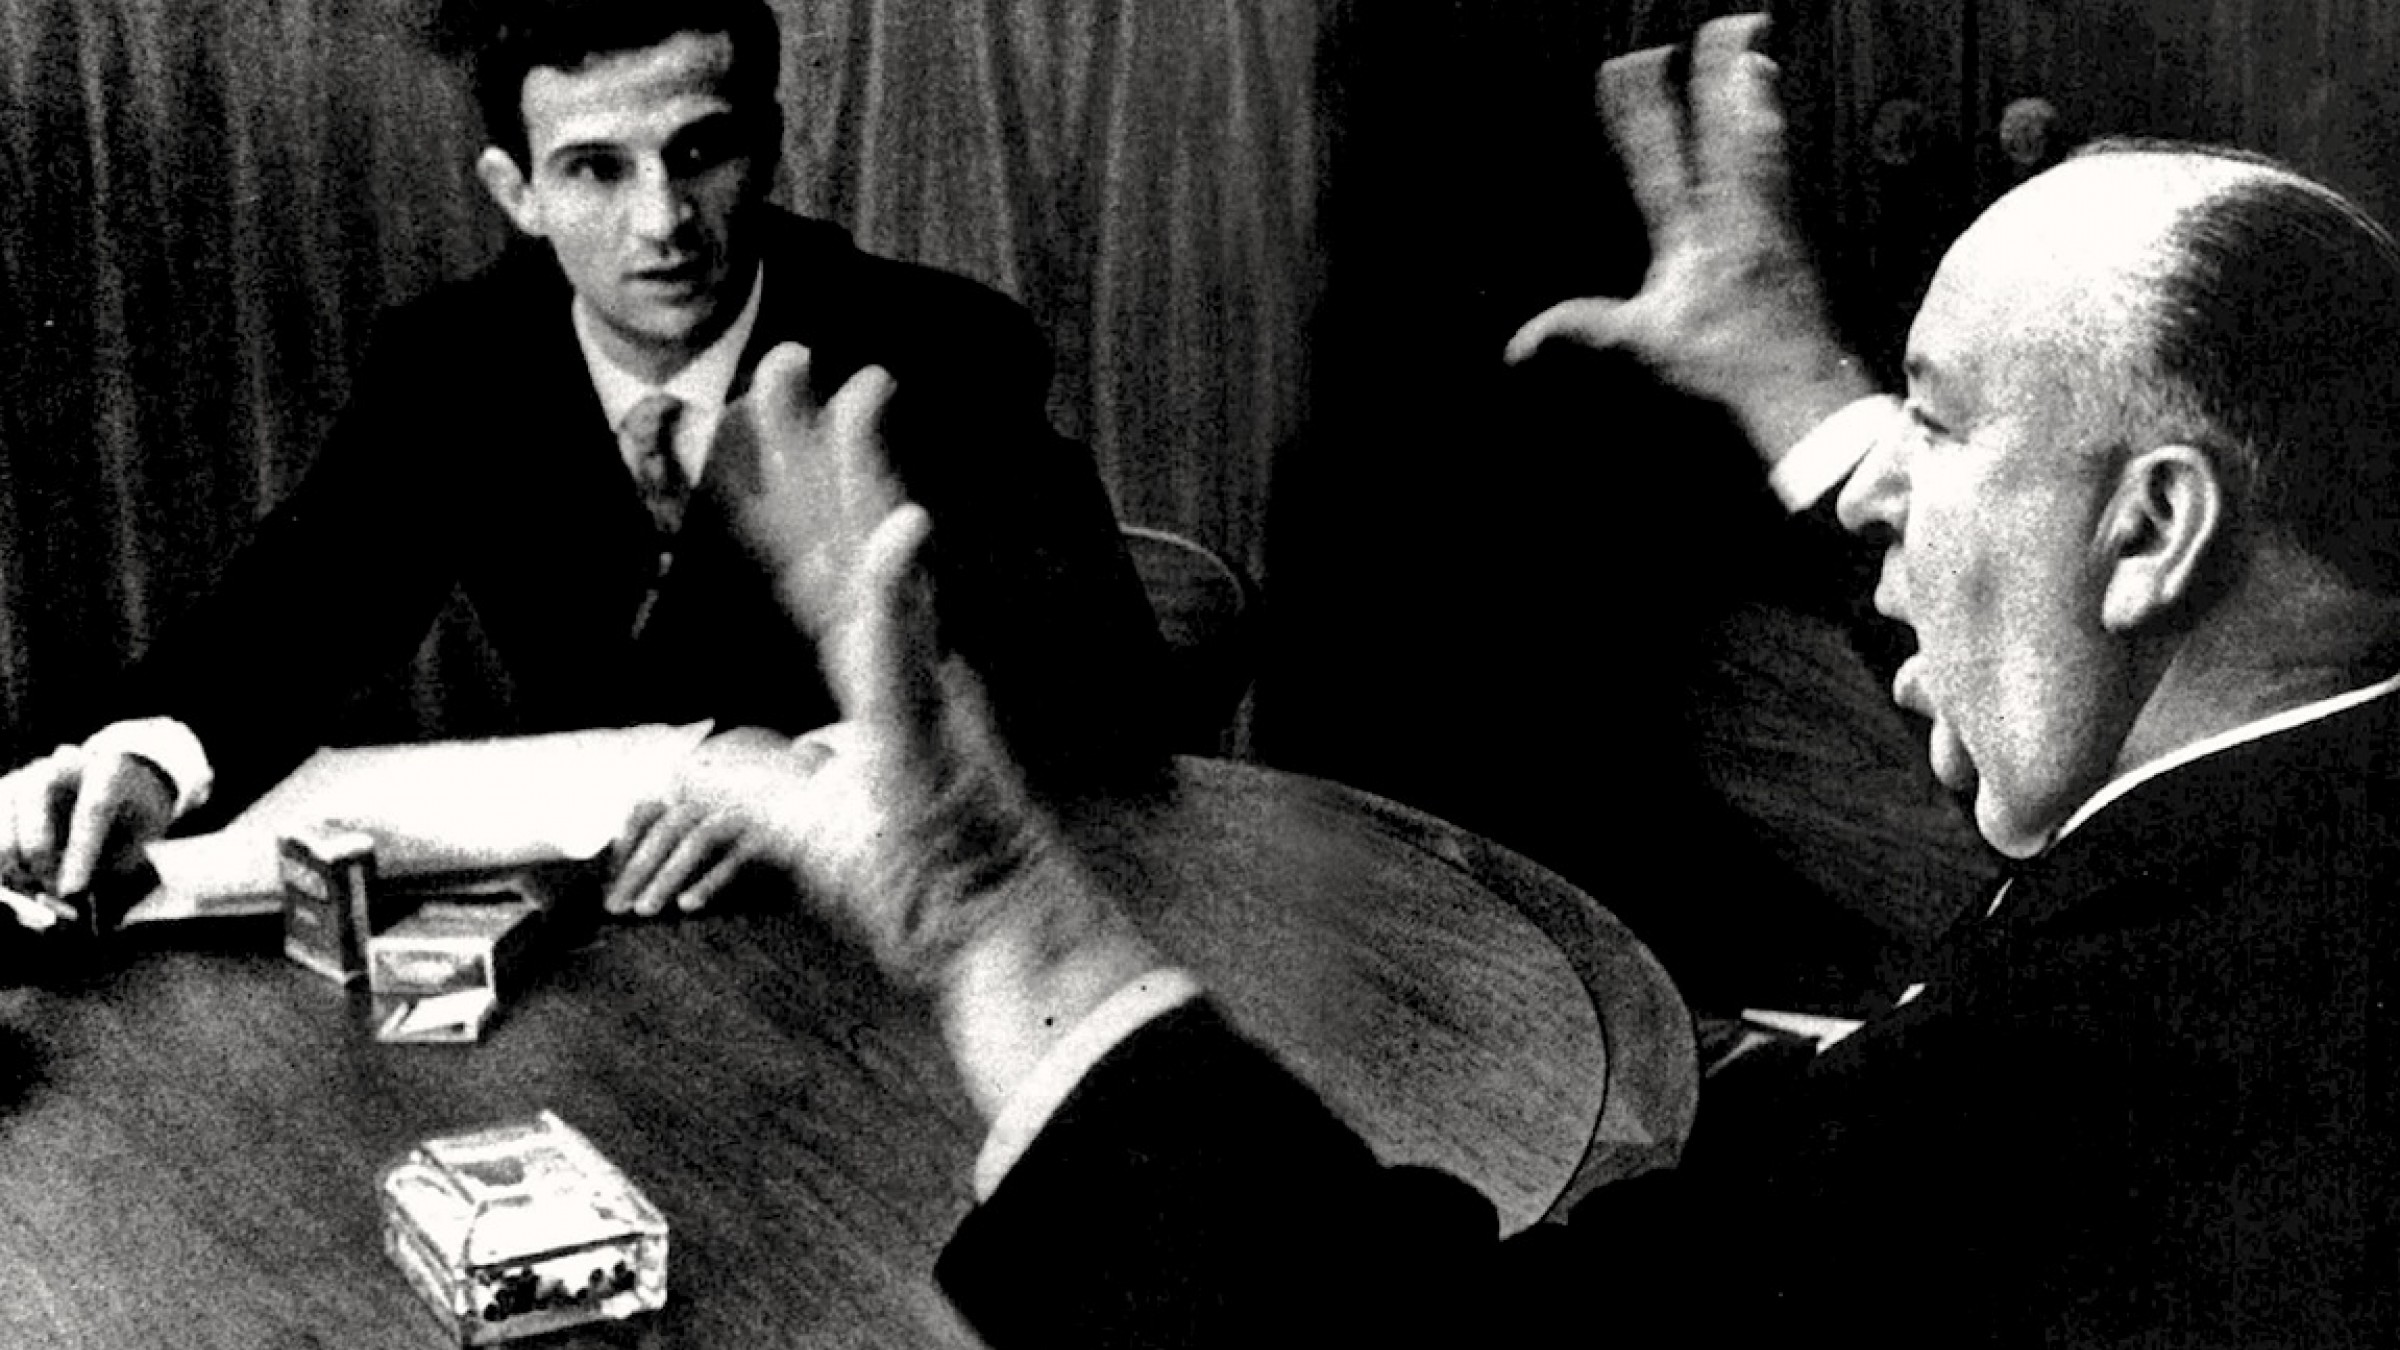 Listen to 12 Hours of François Truffaut Interviewing Alfred Hitchcock for Free